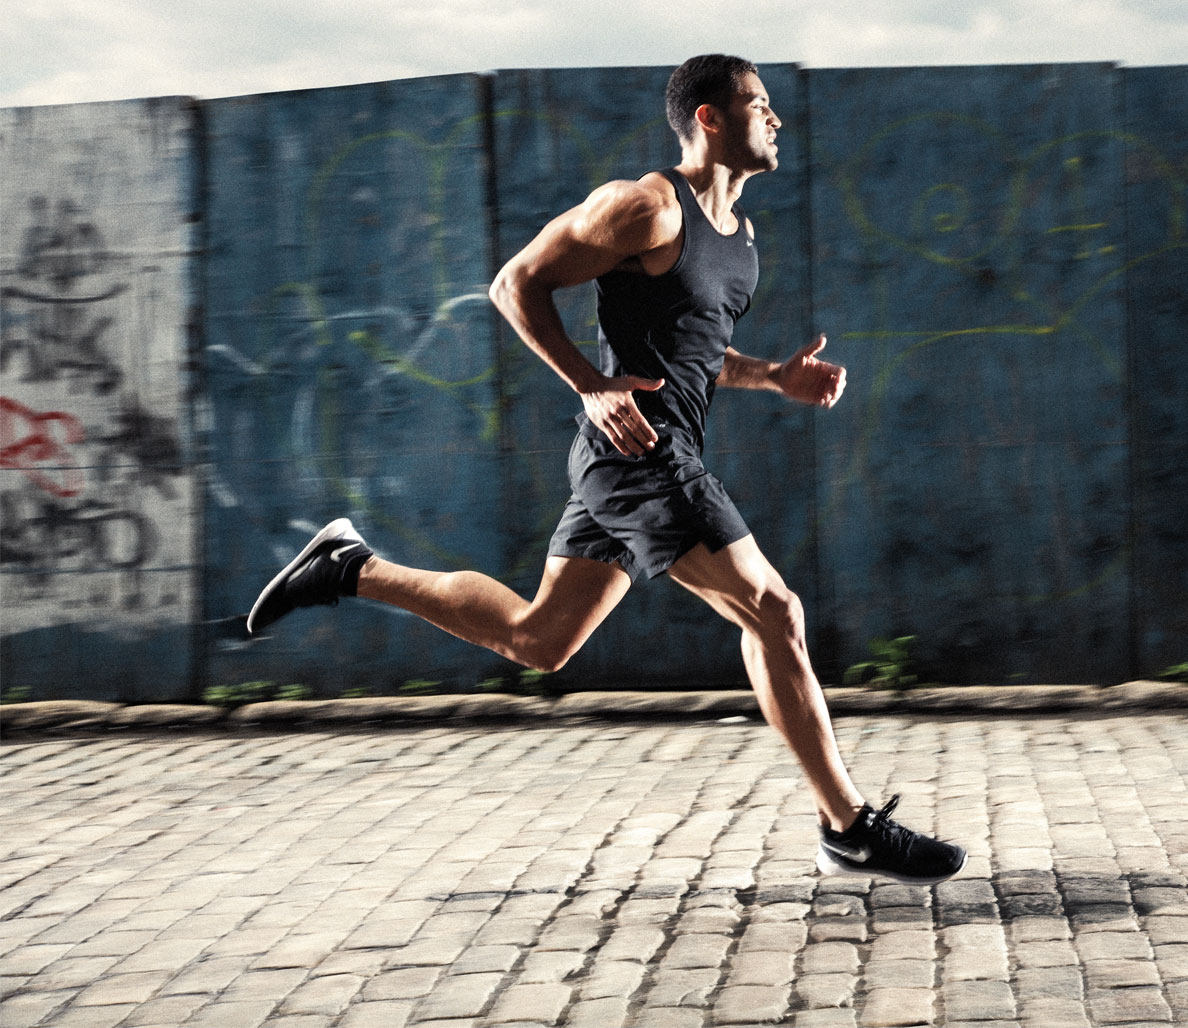 Believe It or Not, Cardio Builds Muscle